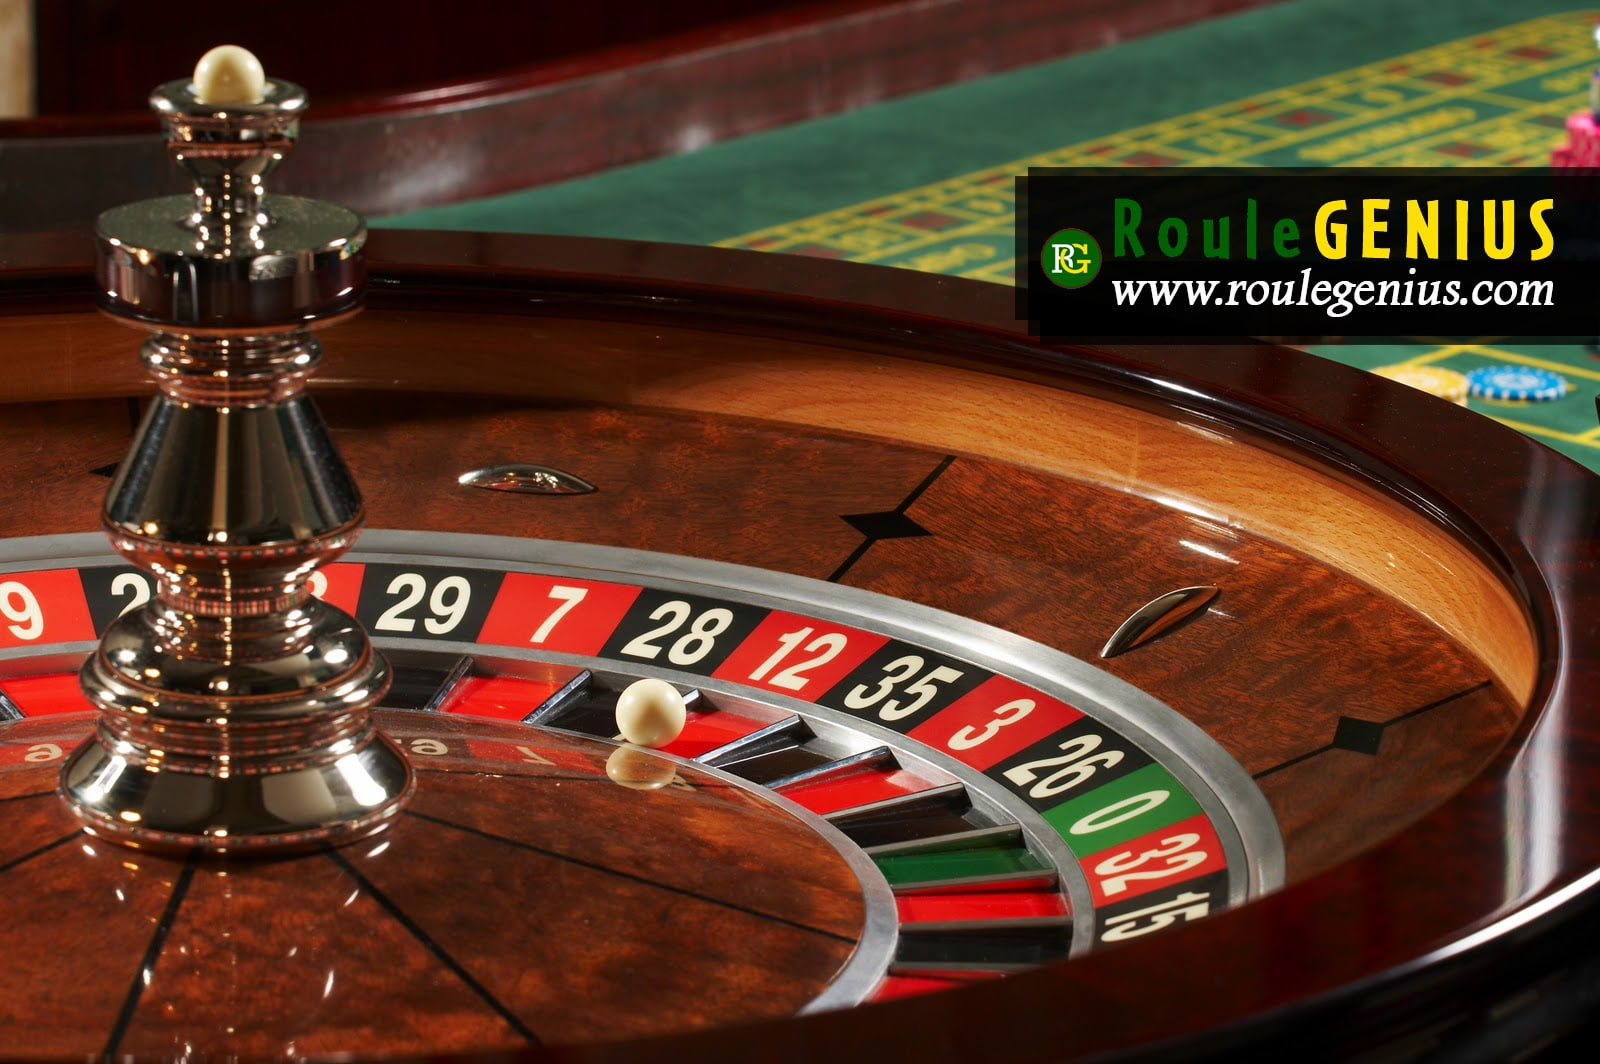 roulette wheel ball to win casino